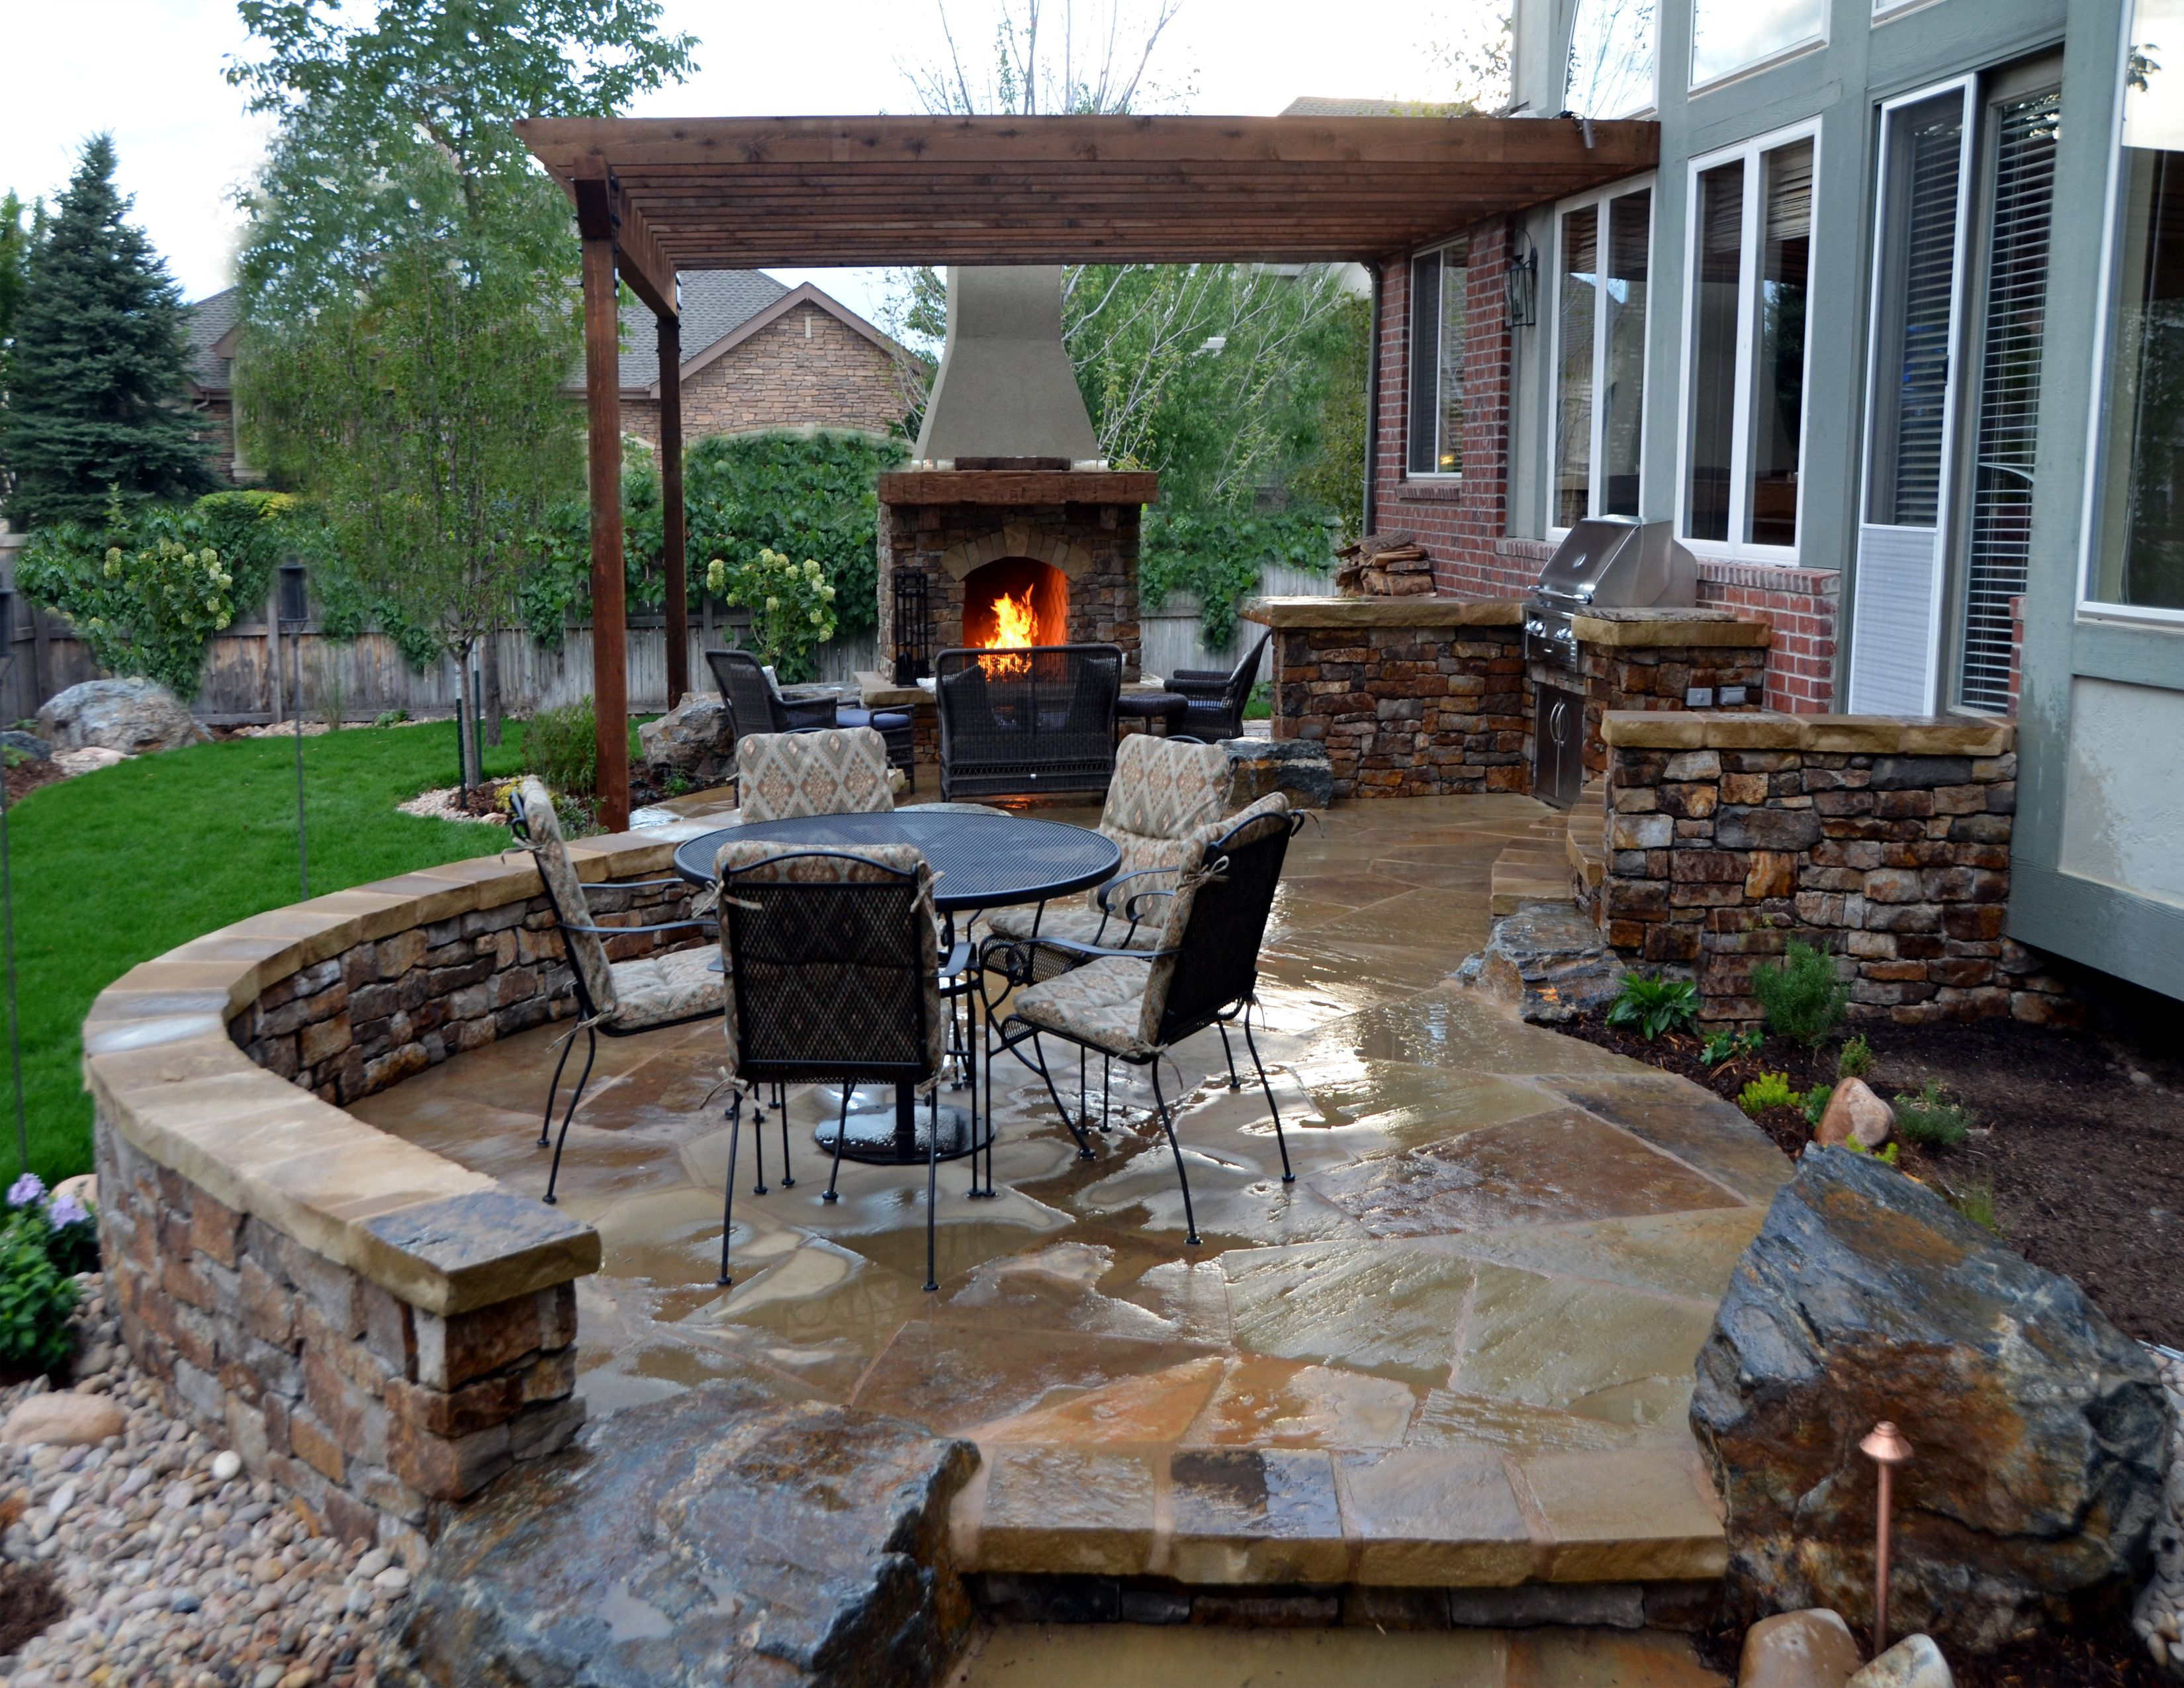 Posh Backyard Patio Ideas For Making The Outdoor More ...